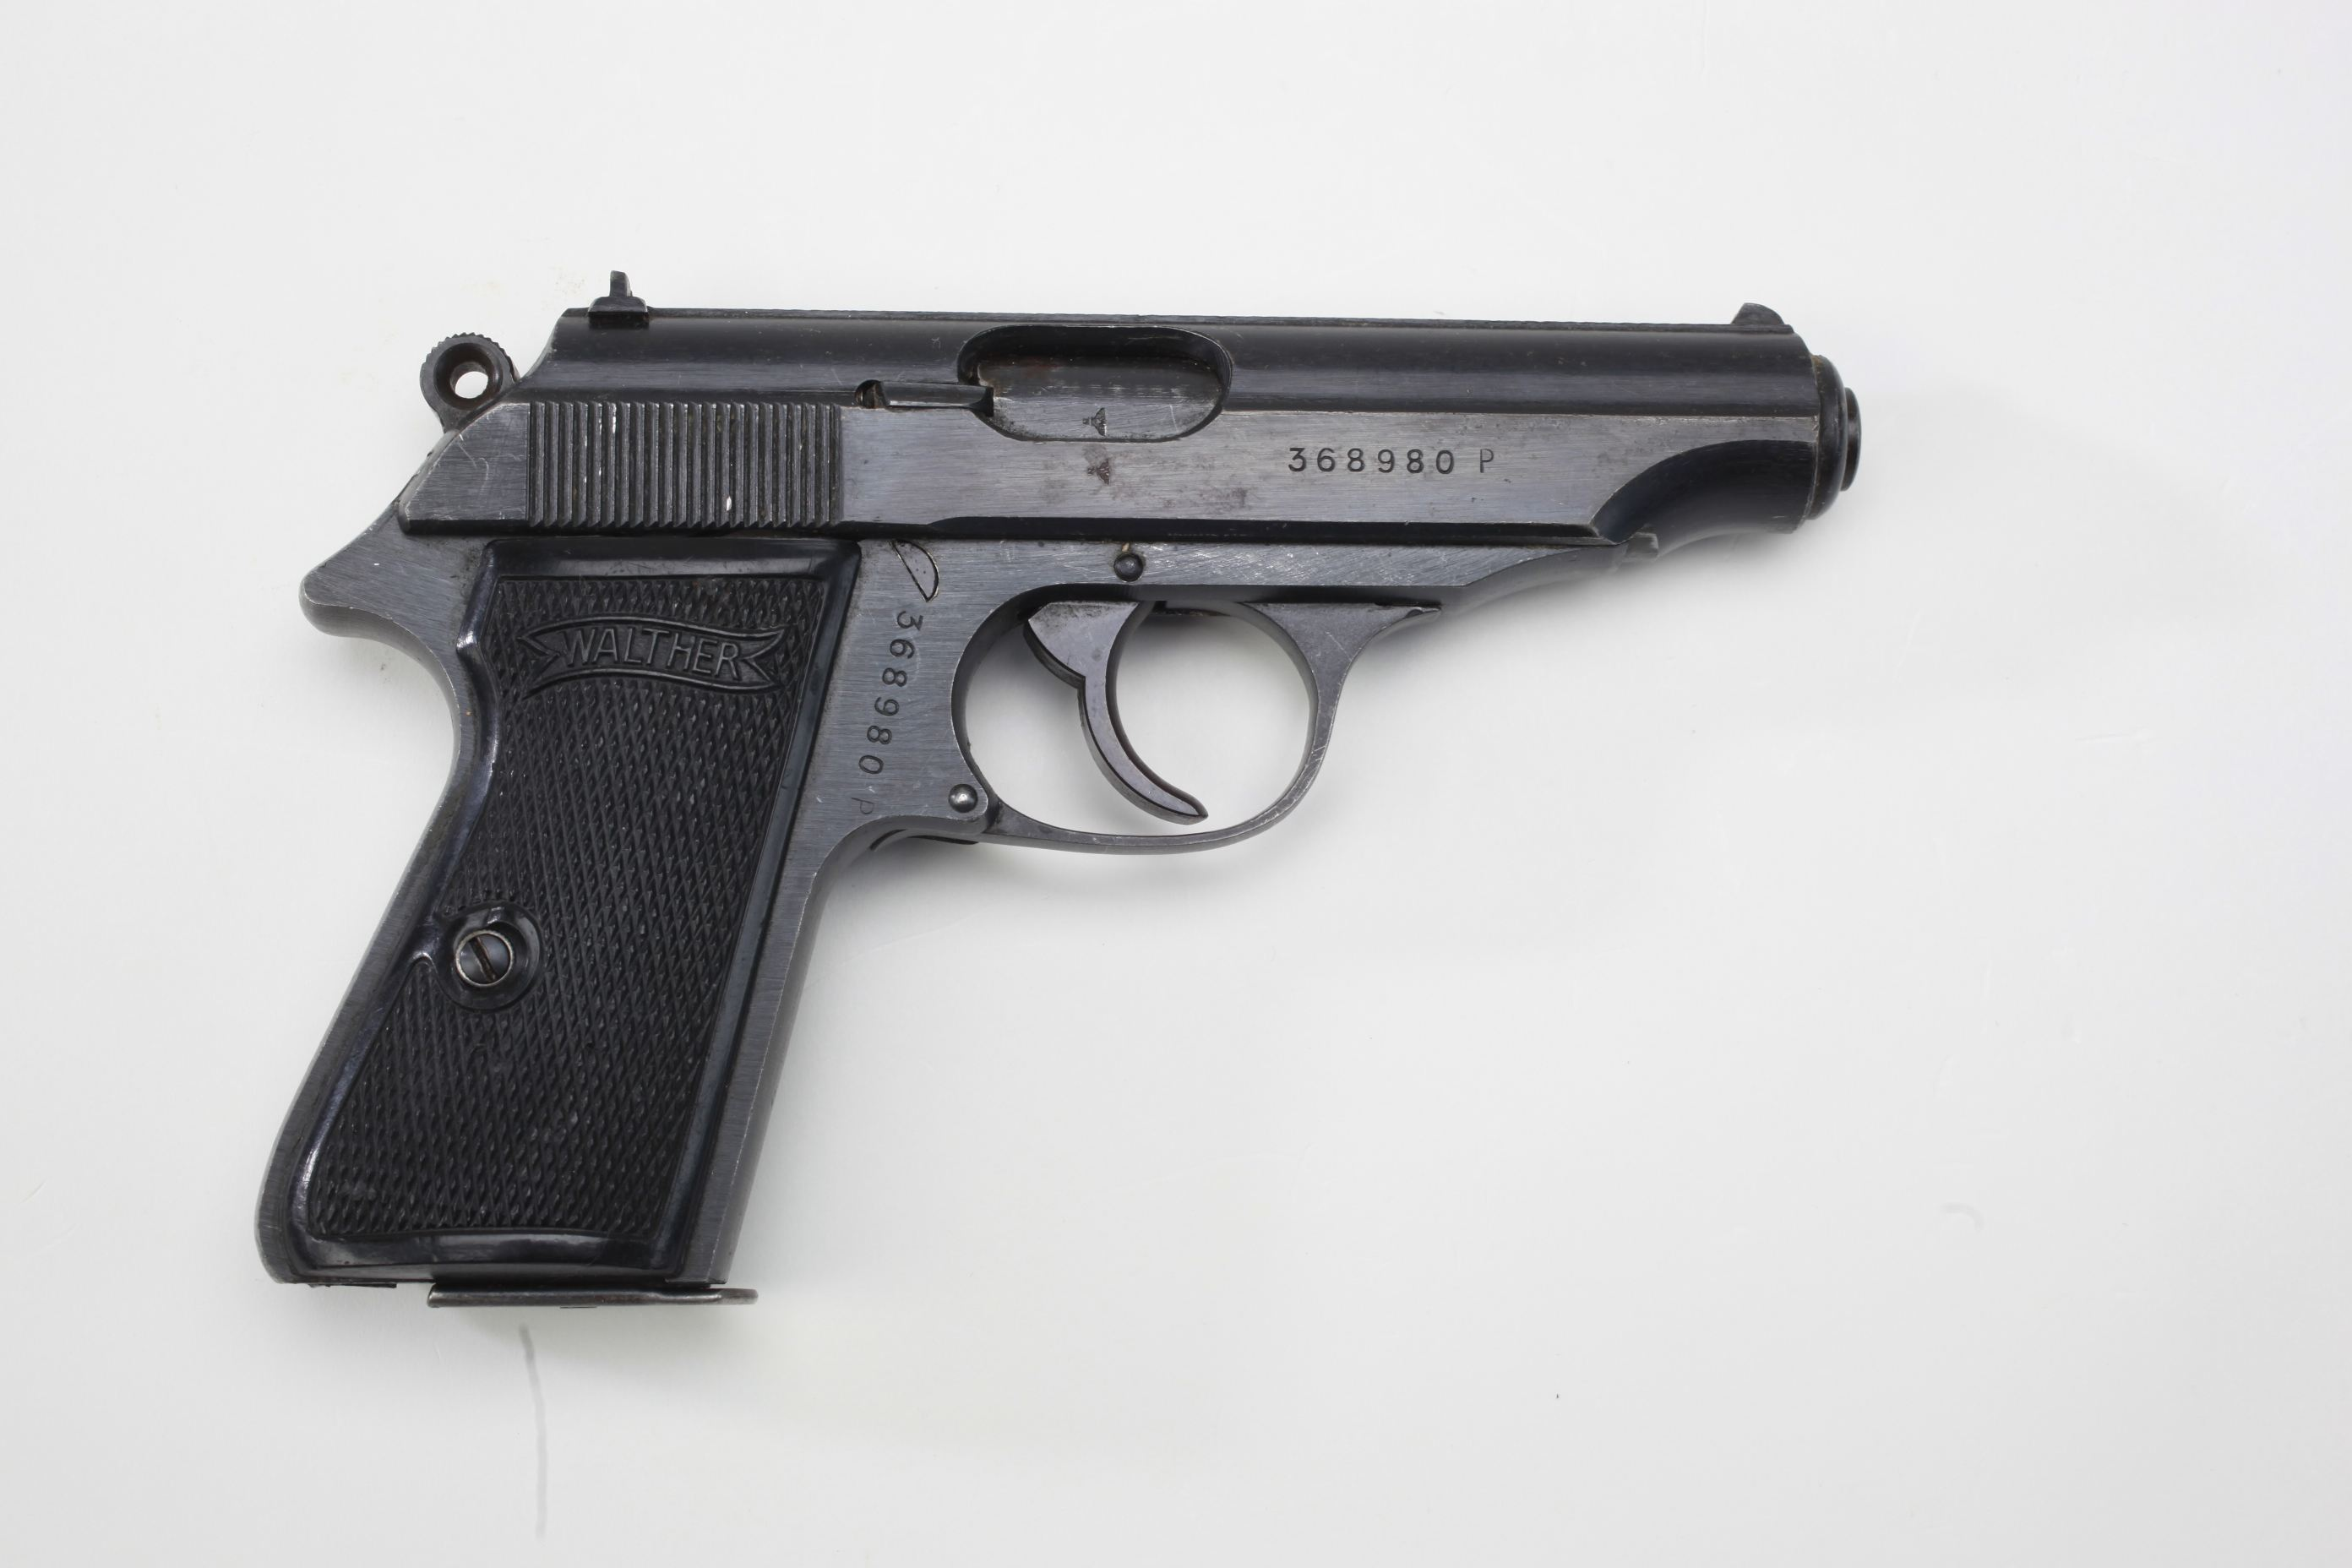 Walther Model PP Semi Automatic Pistol